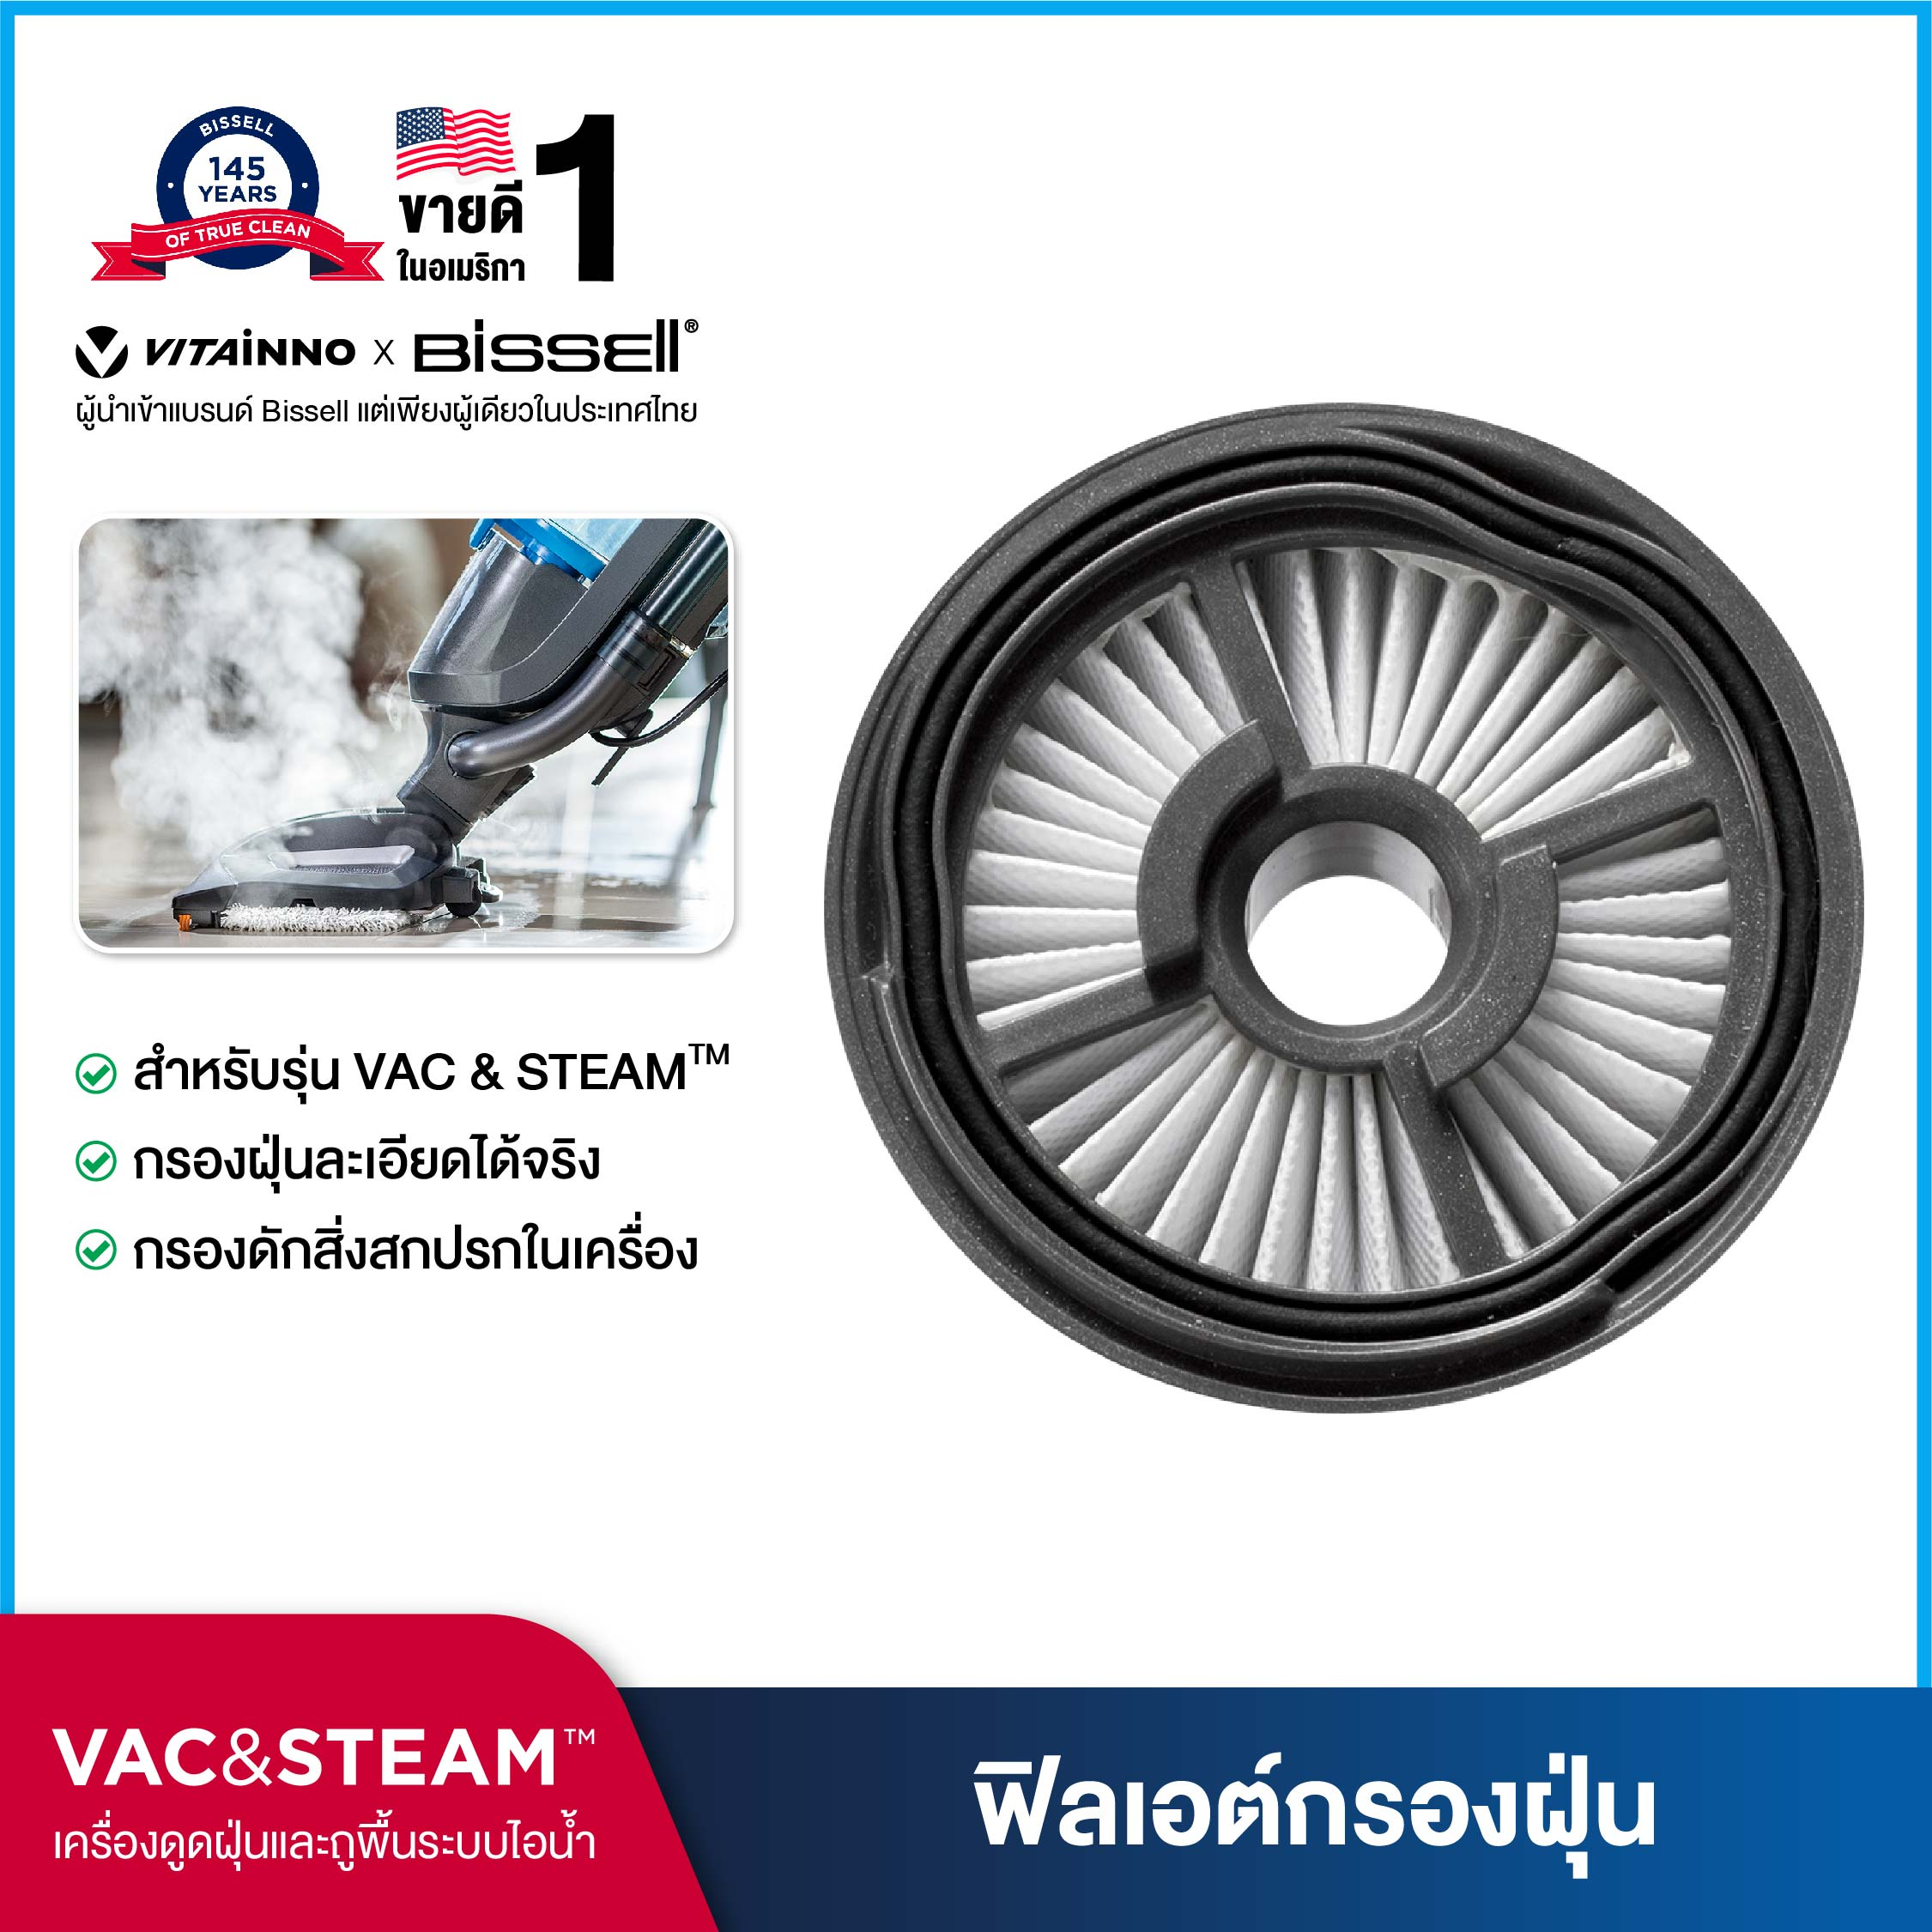 BISSELL VACSTEAM FILTER กรองฝุ่น